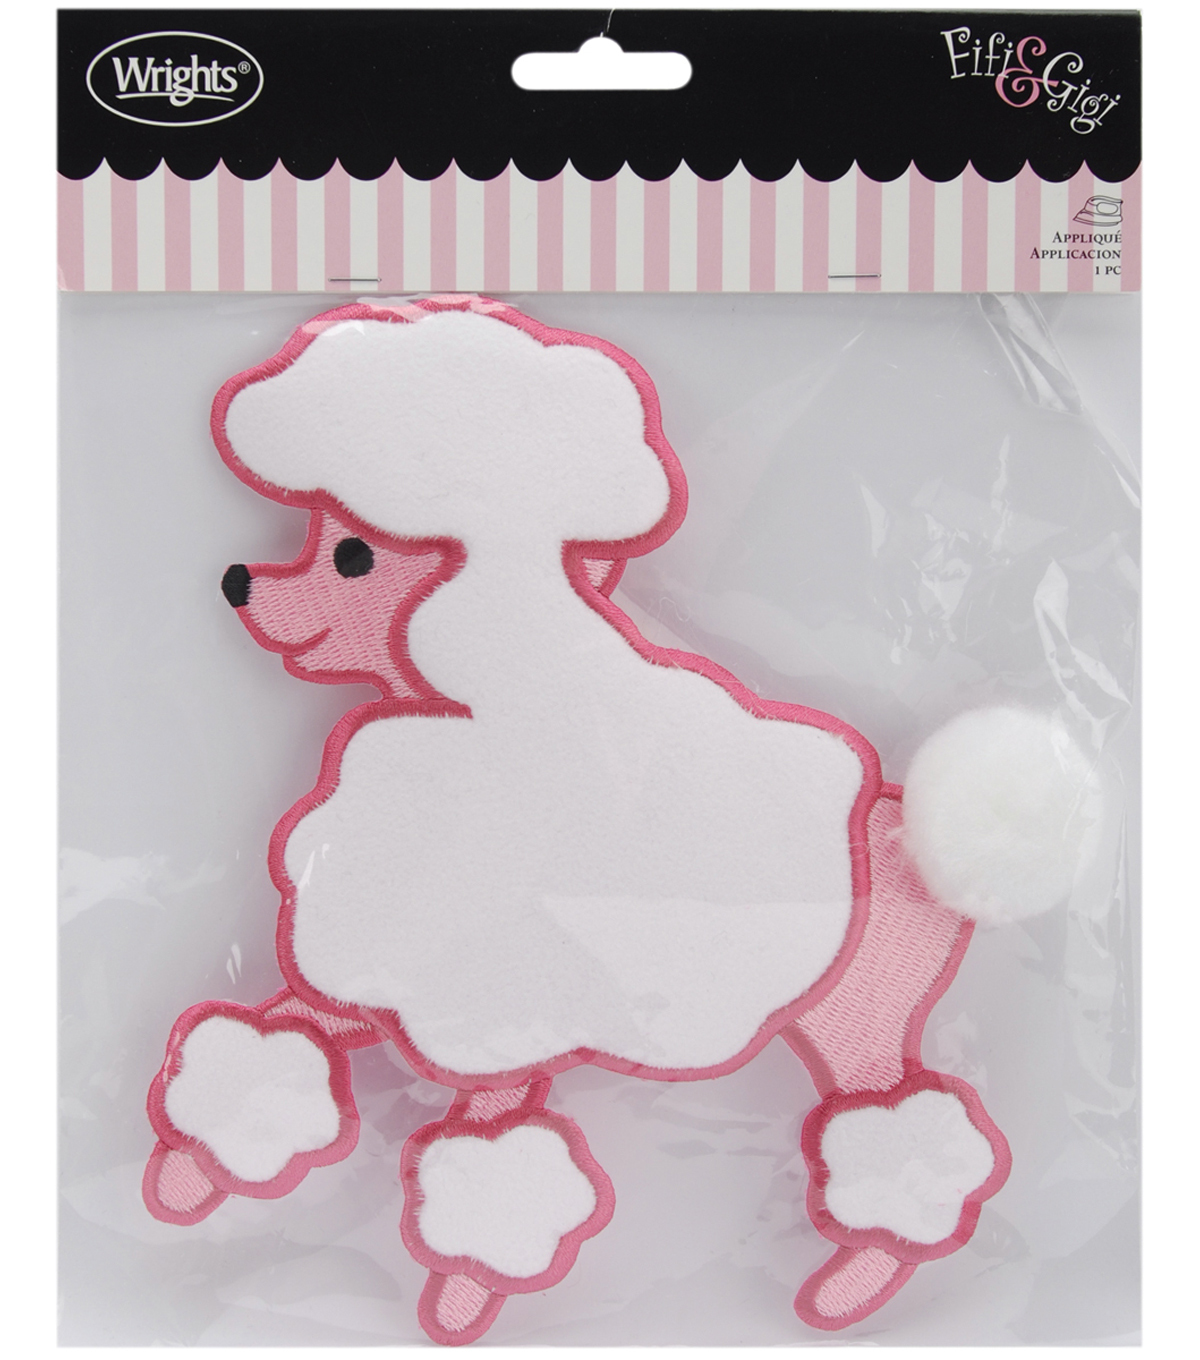 Wrights® Fifi&Gigi Iron-On Applique-Poodle 7-1/4\u0022x6-1/2\u0022-Pink & White